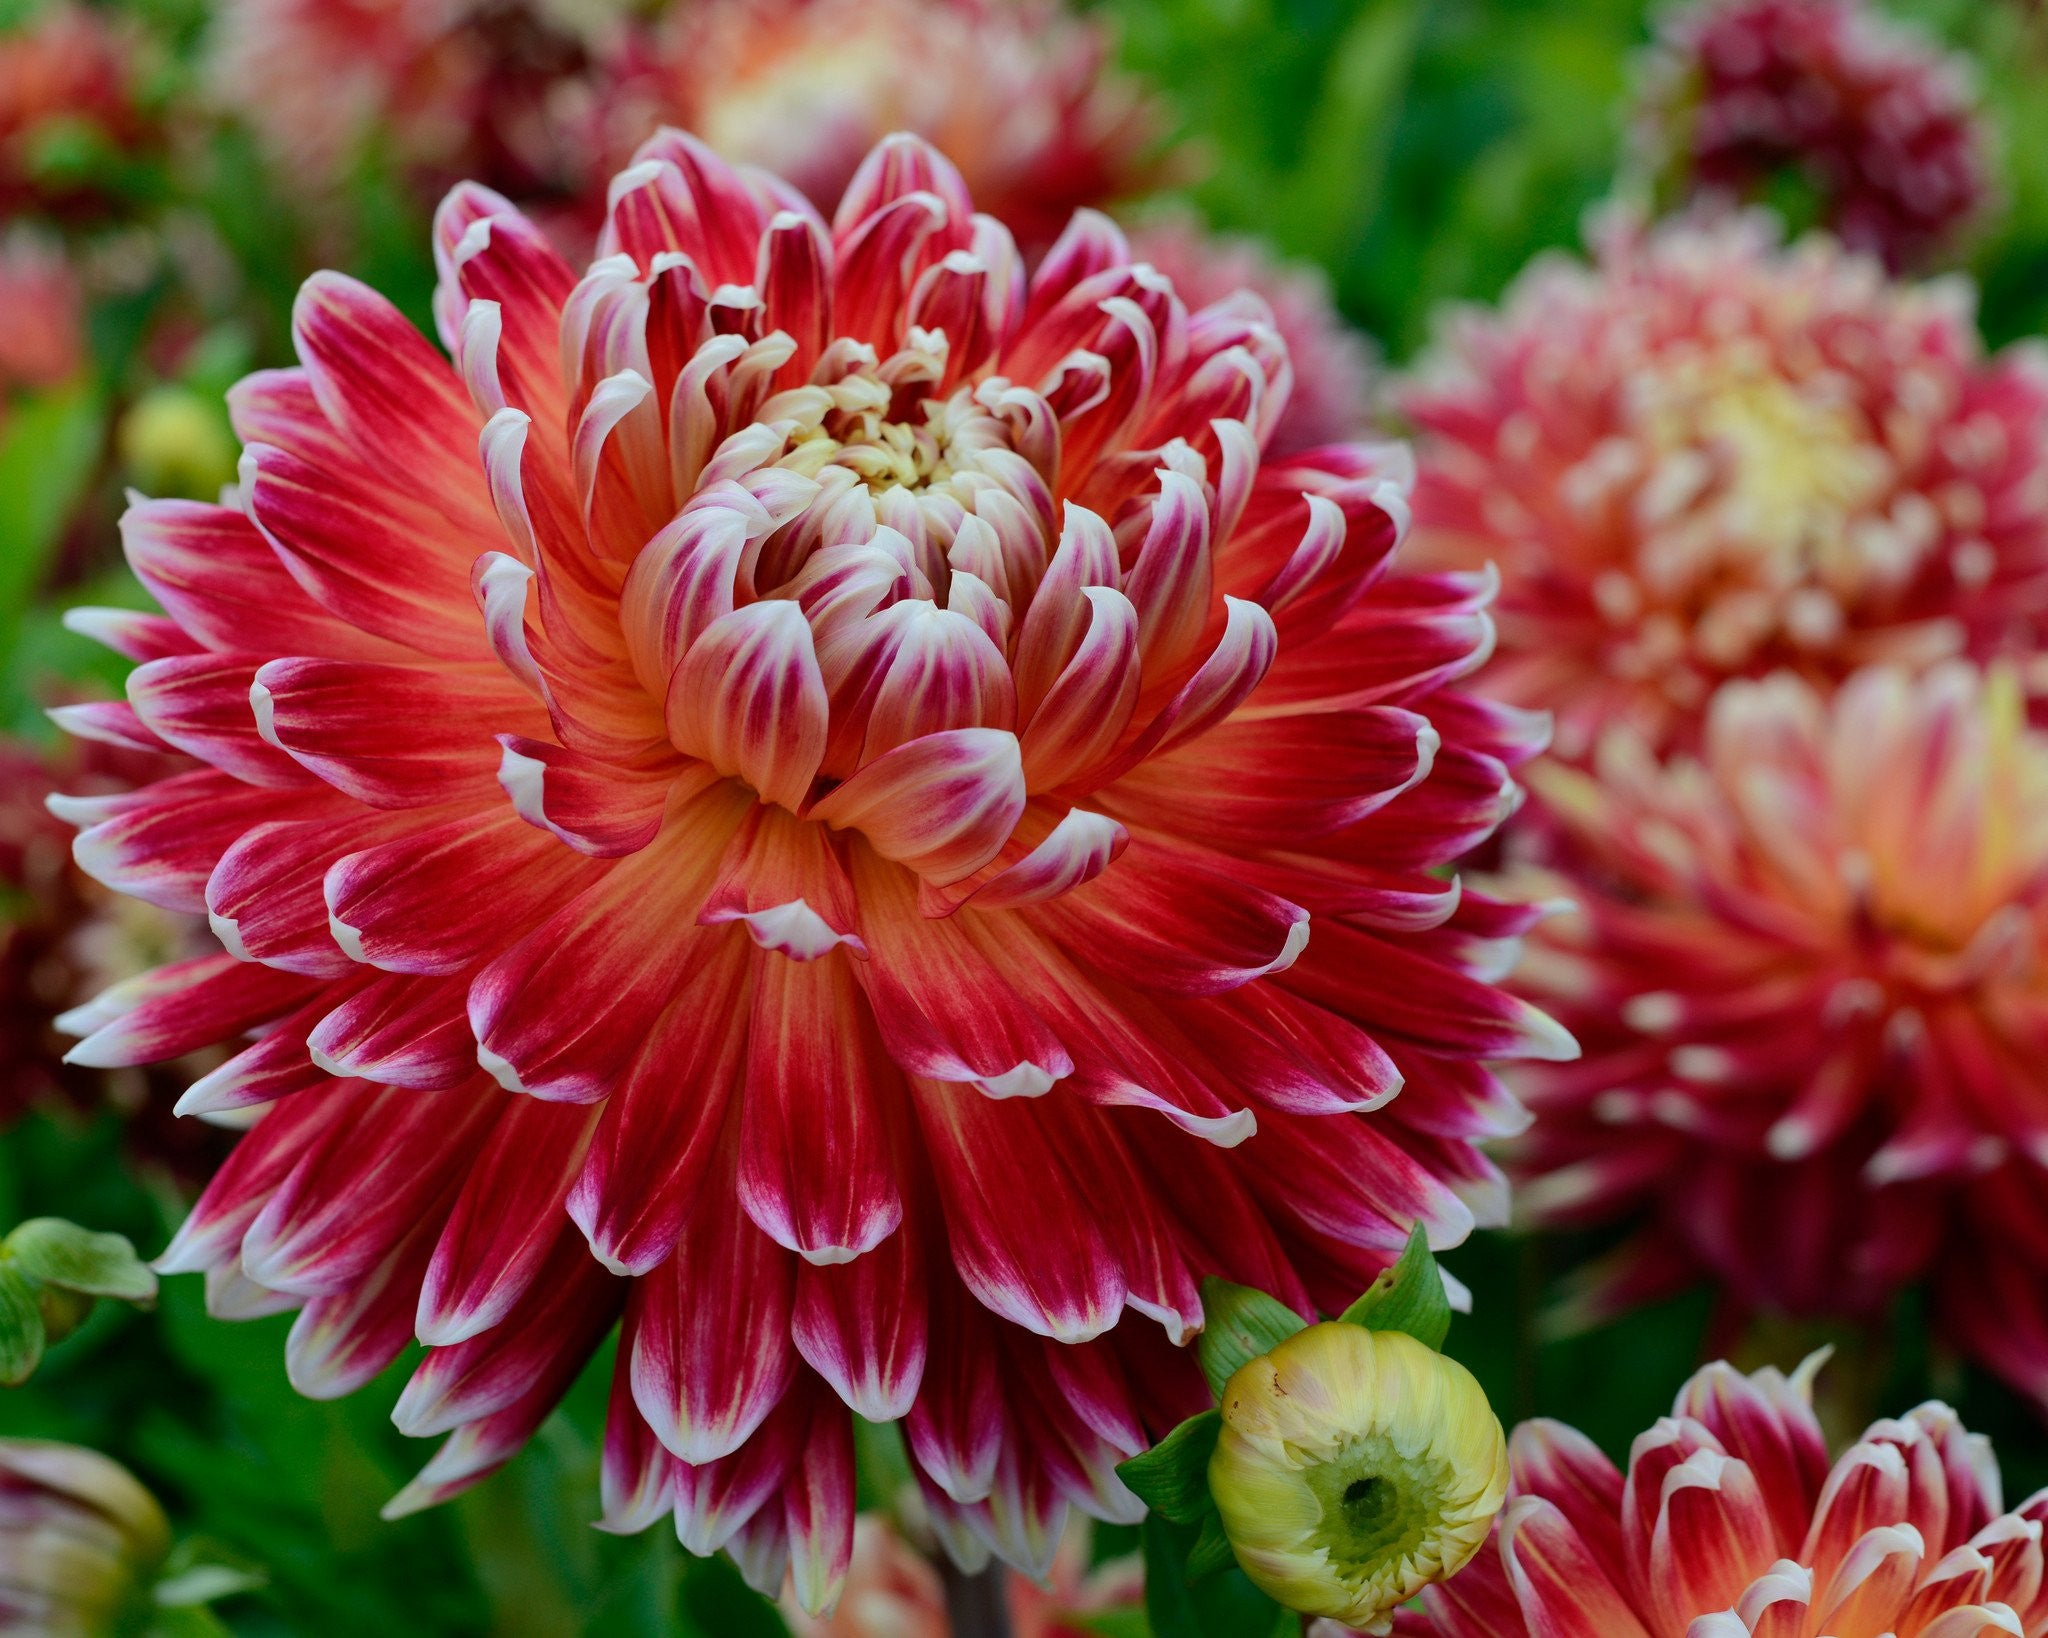 Dahlia Akita Tubers Buy Online At Farmer Gracy Uk